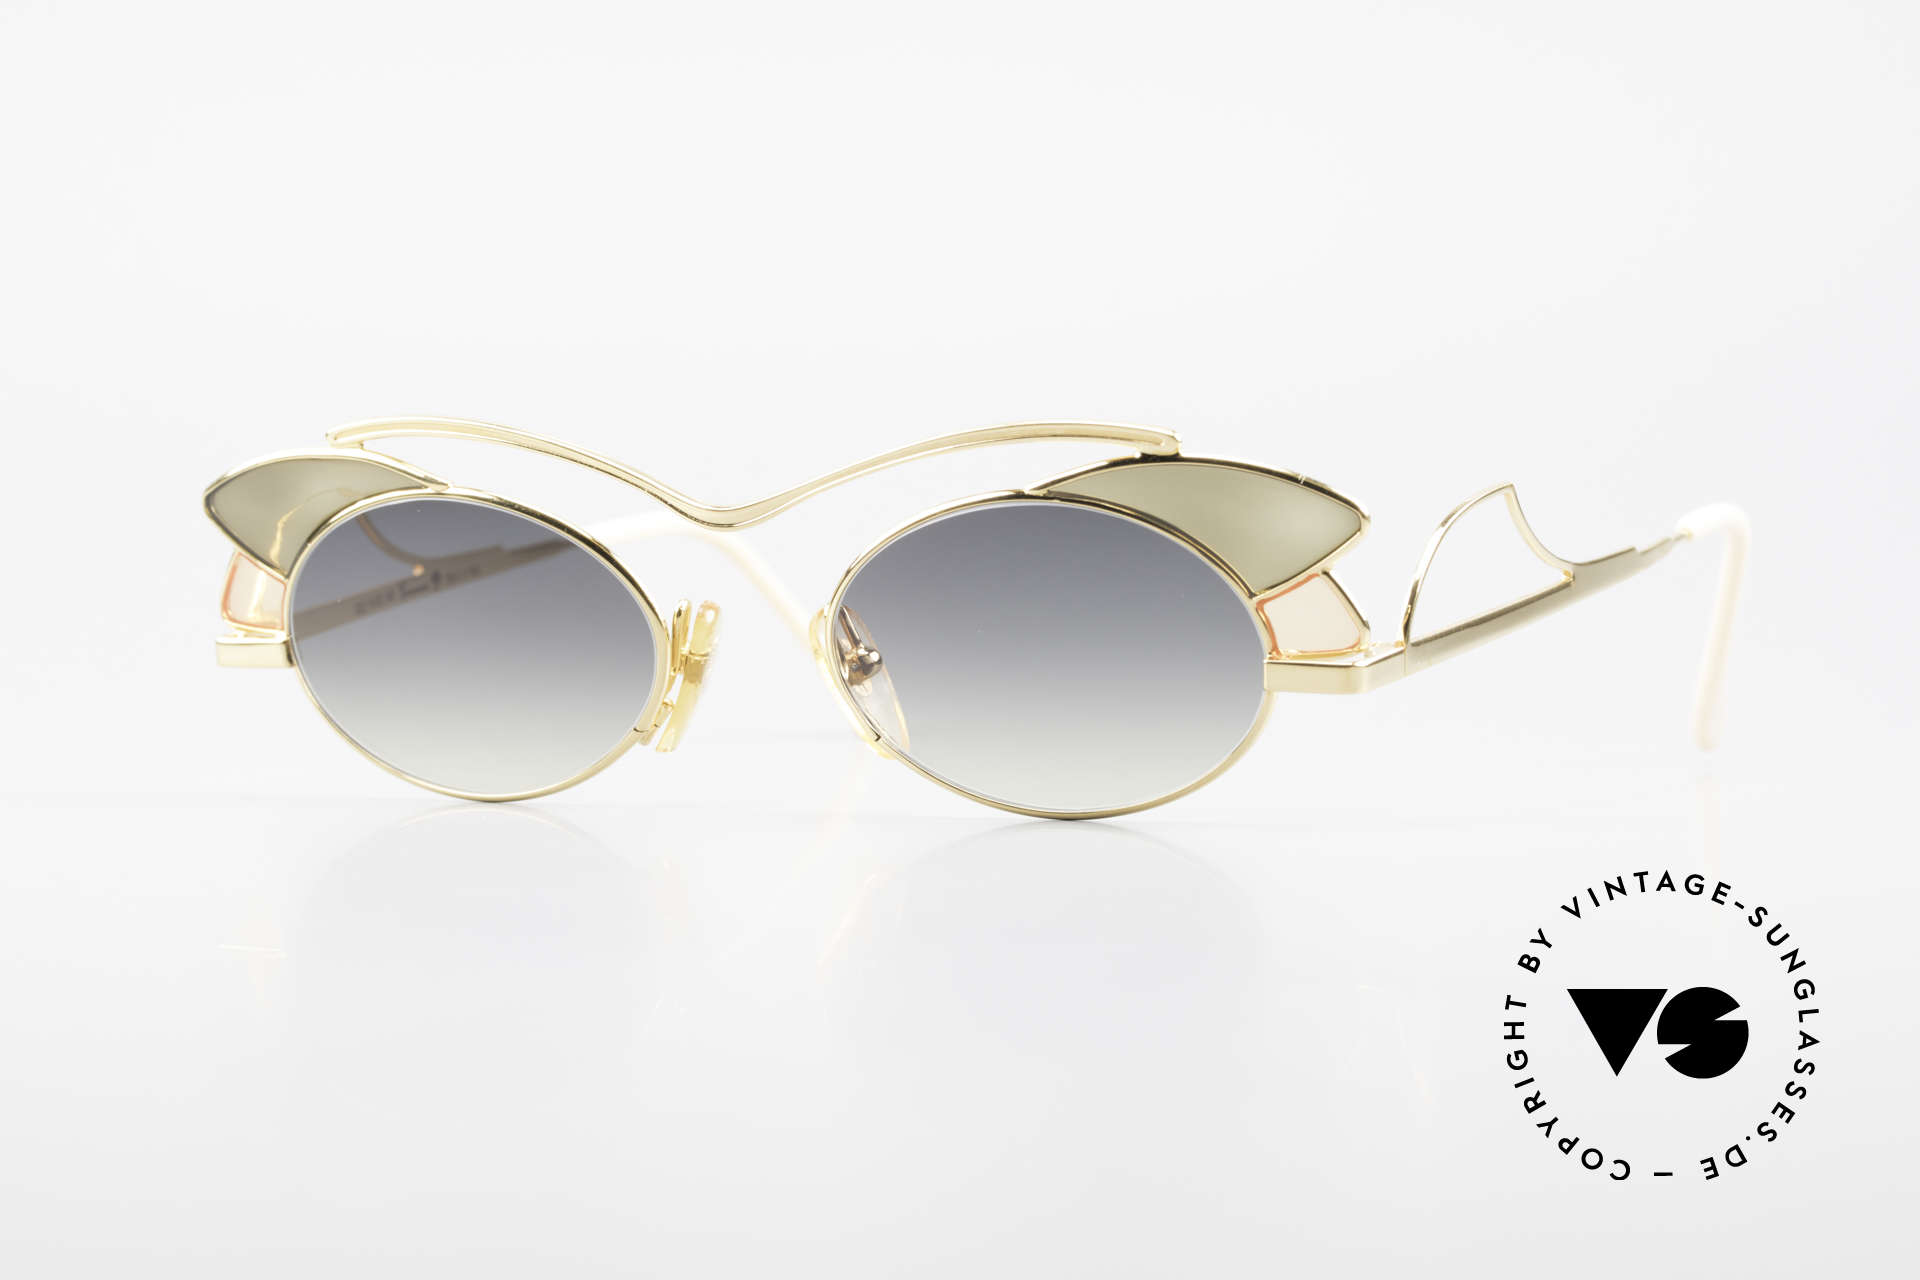 Casanova LC1 24kt Gold Plated Murano Glass, glamorous CASANOVA sunglasses from around 1985, Made for Women